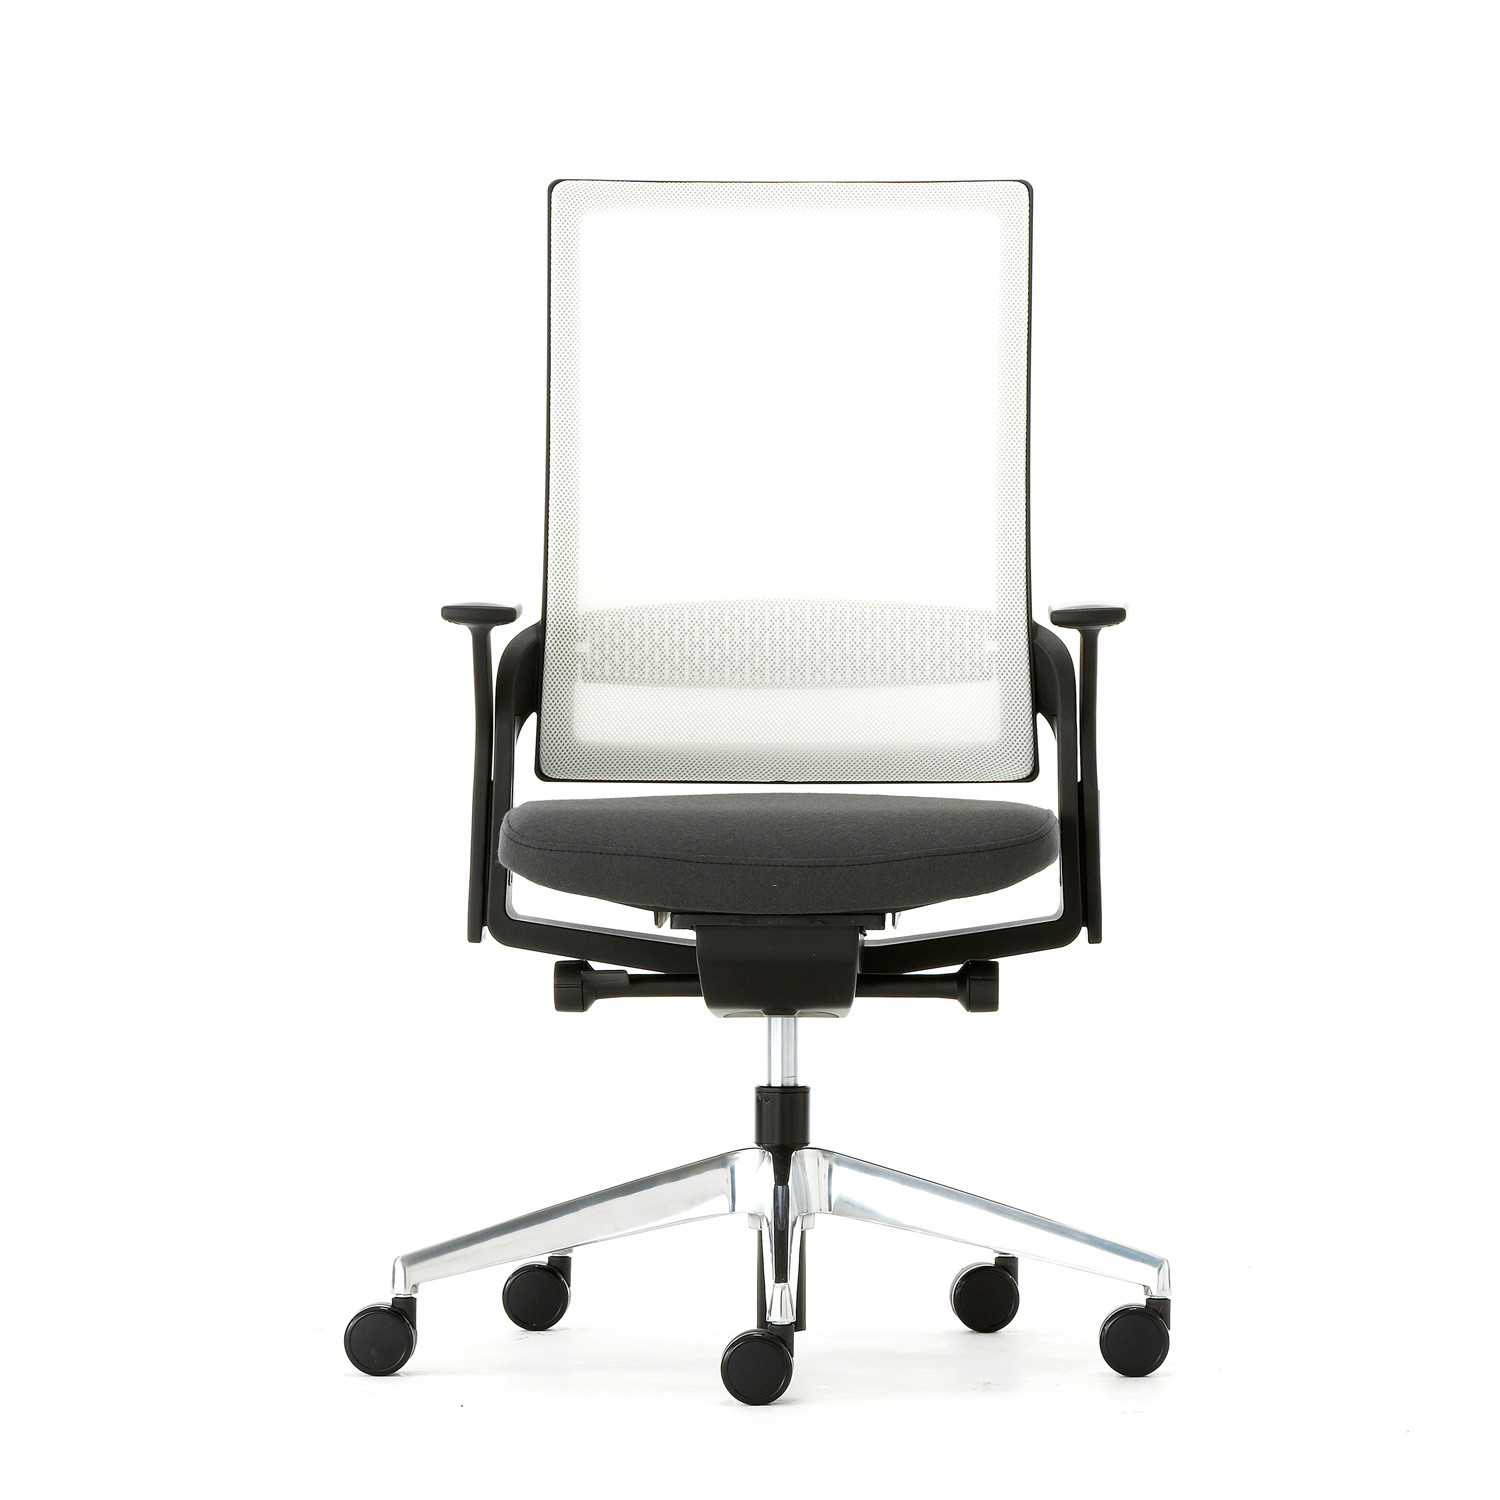 Senator Ecoflex Office Chair